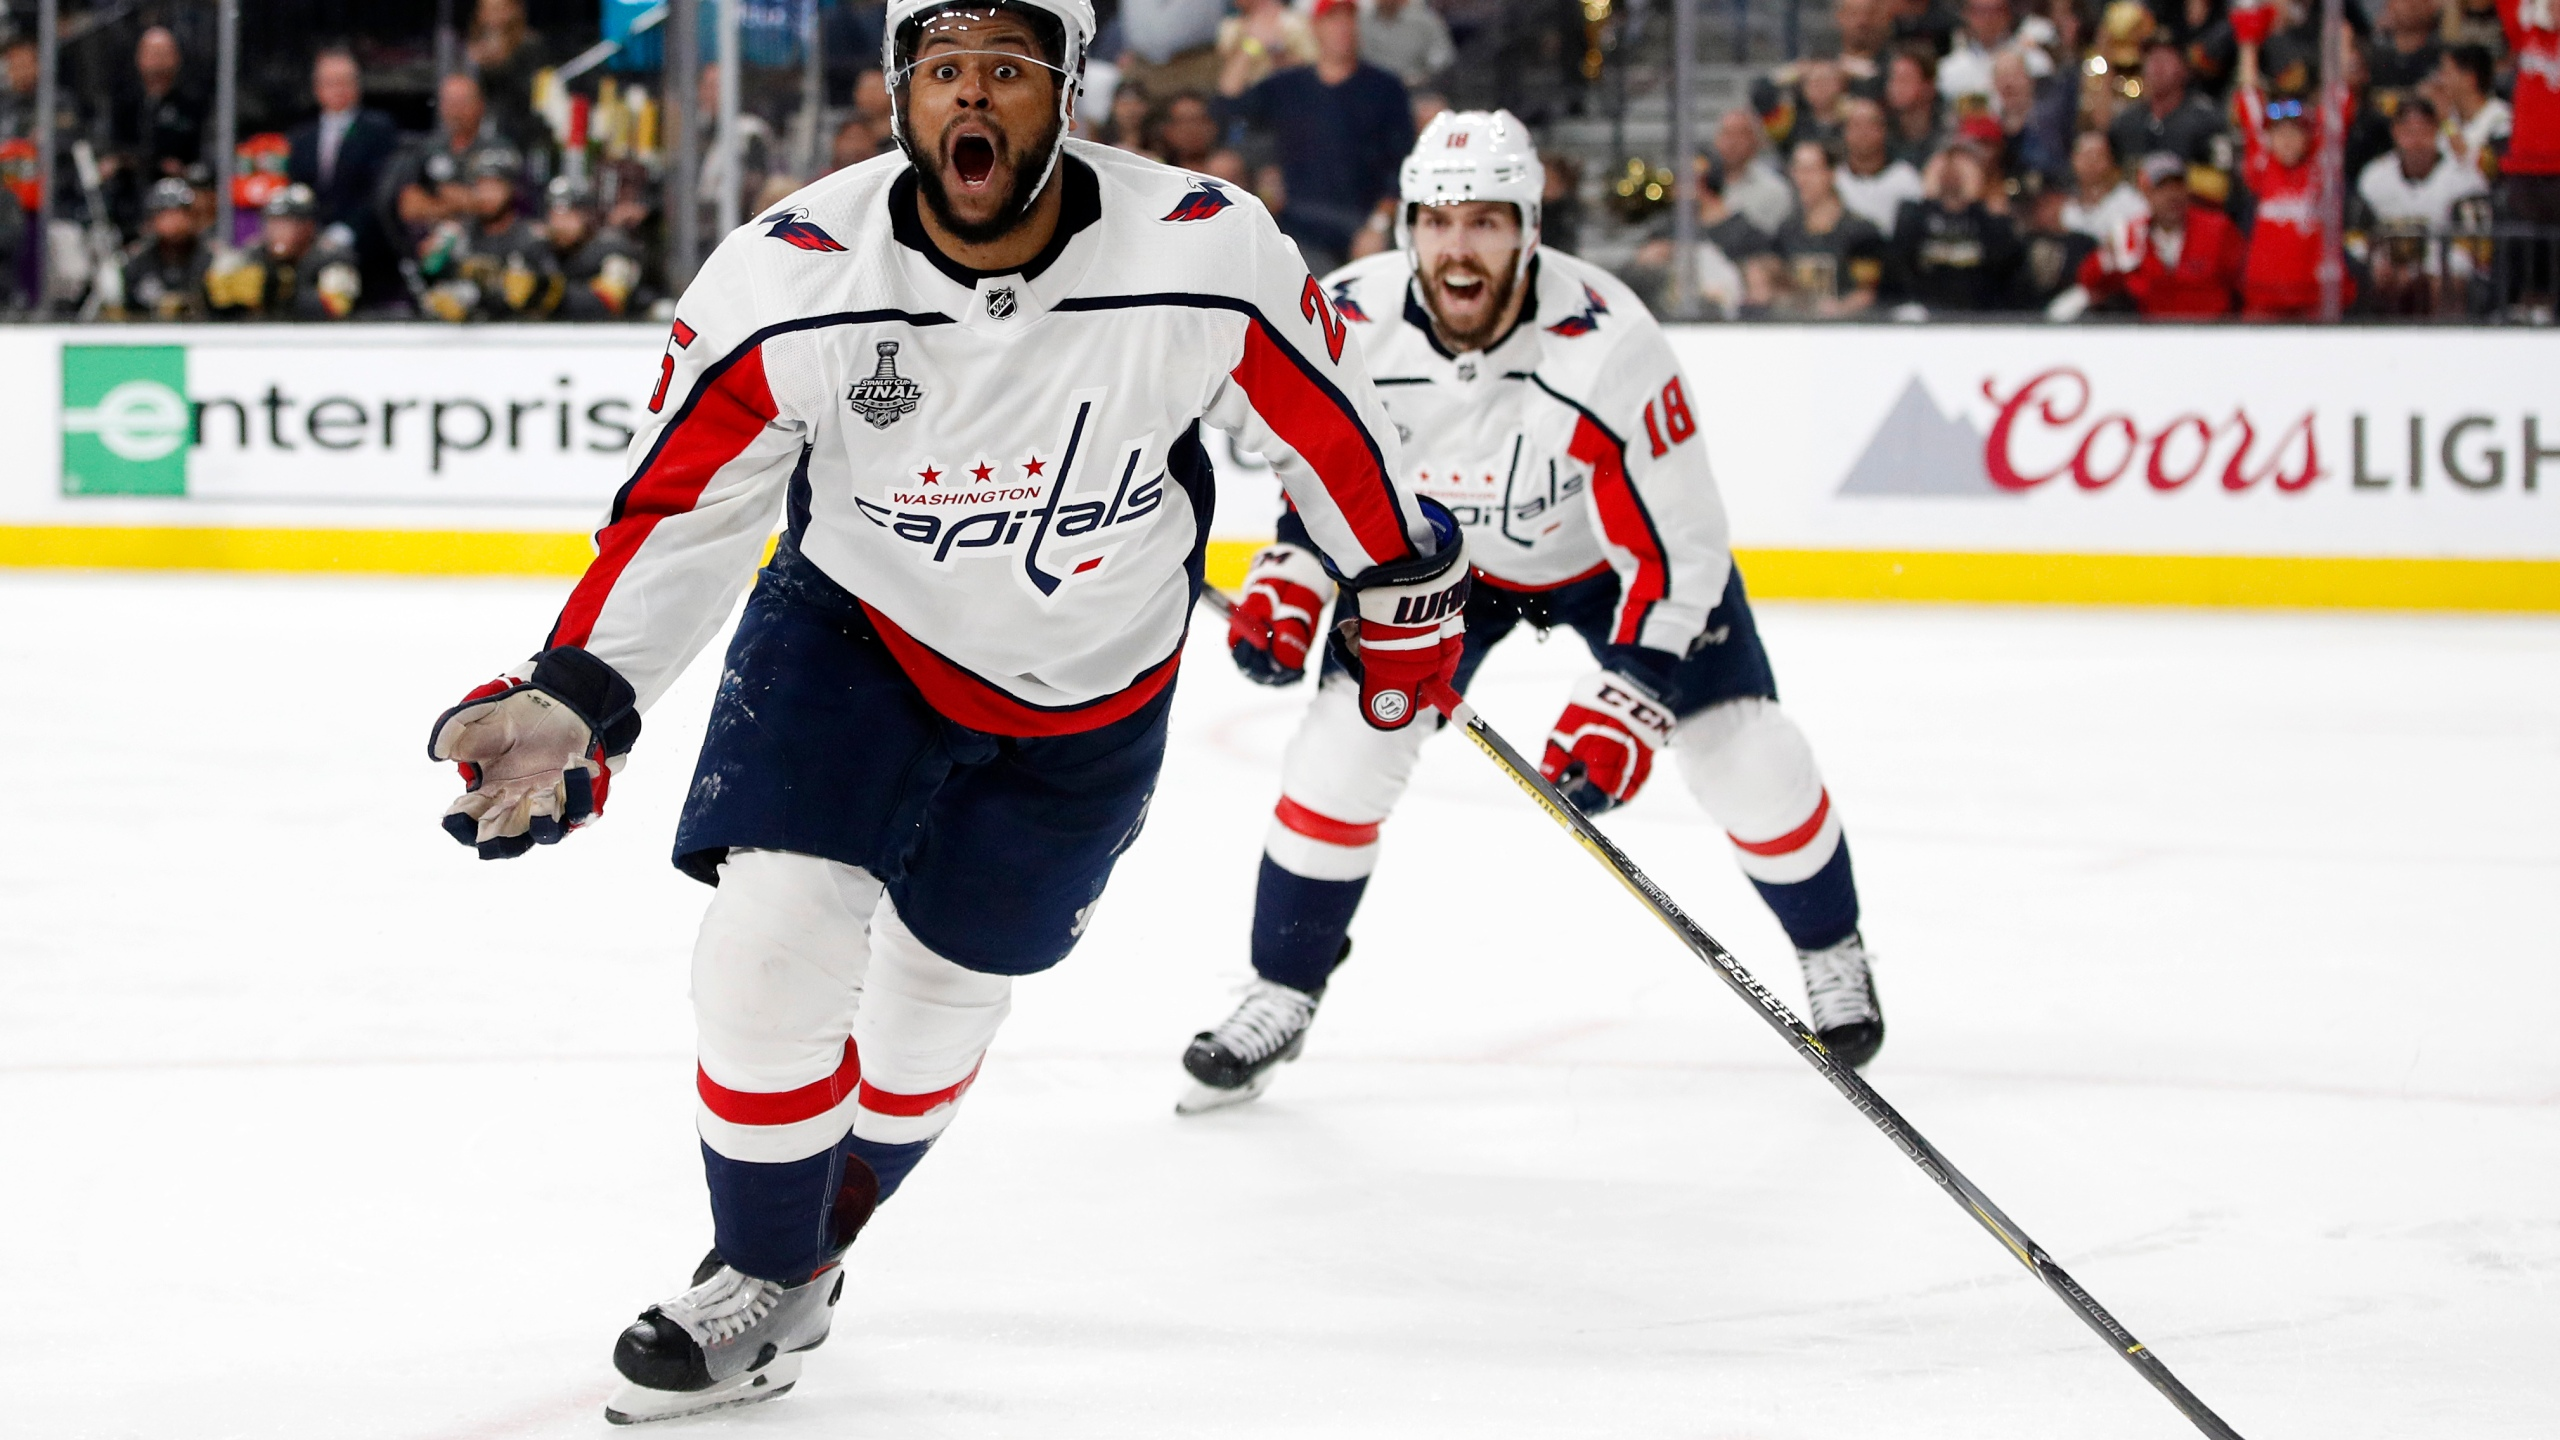 APTOPIX_Stanley_Cup_Capitals_Golden_Knights_Hockey_95424-159532.jpg10056945